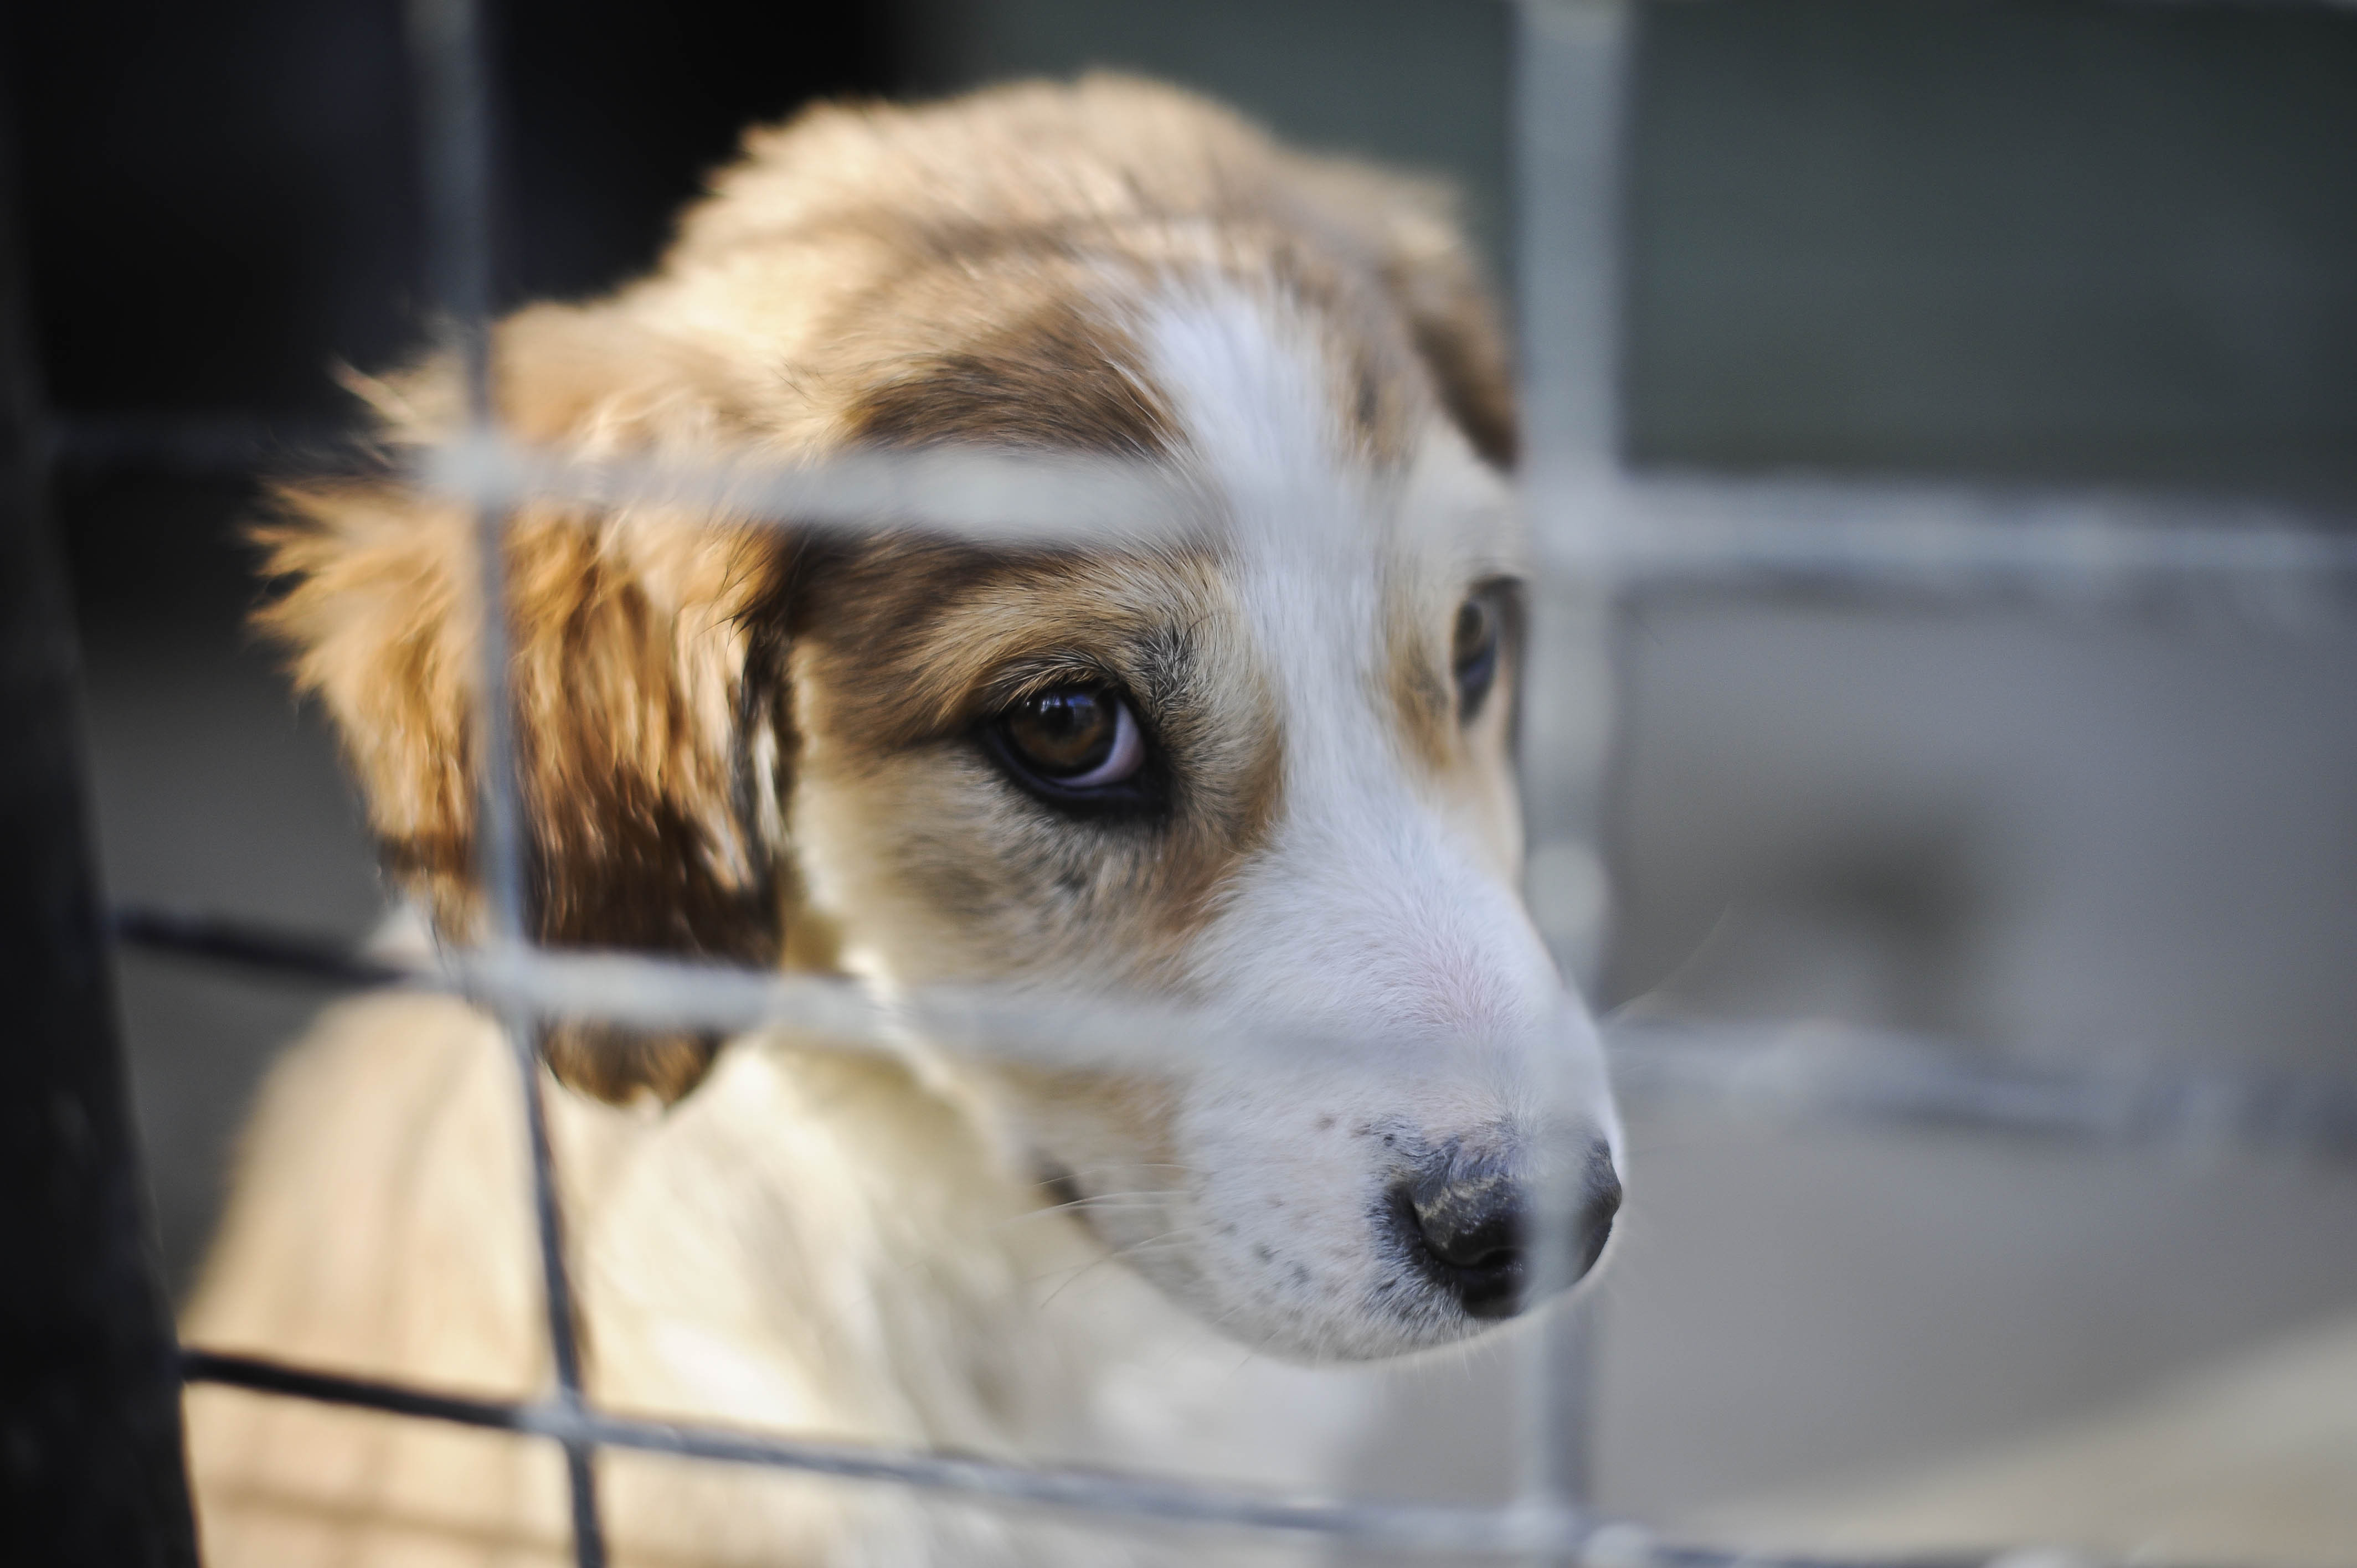 Puppy farming reports on the rise